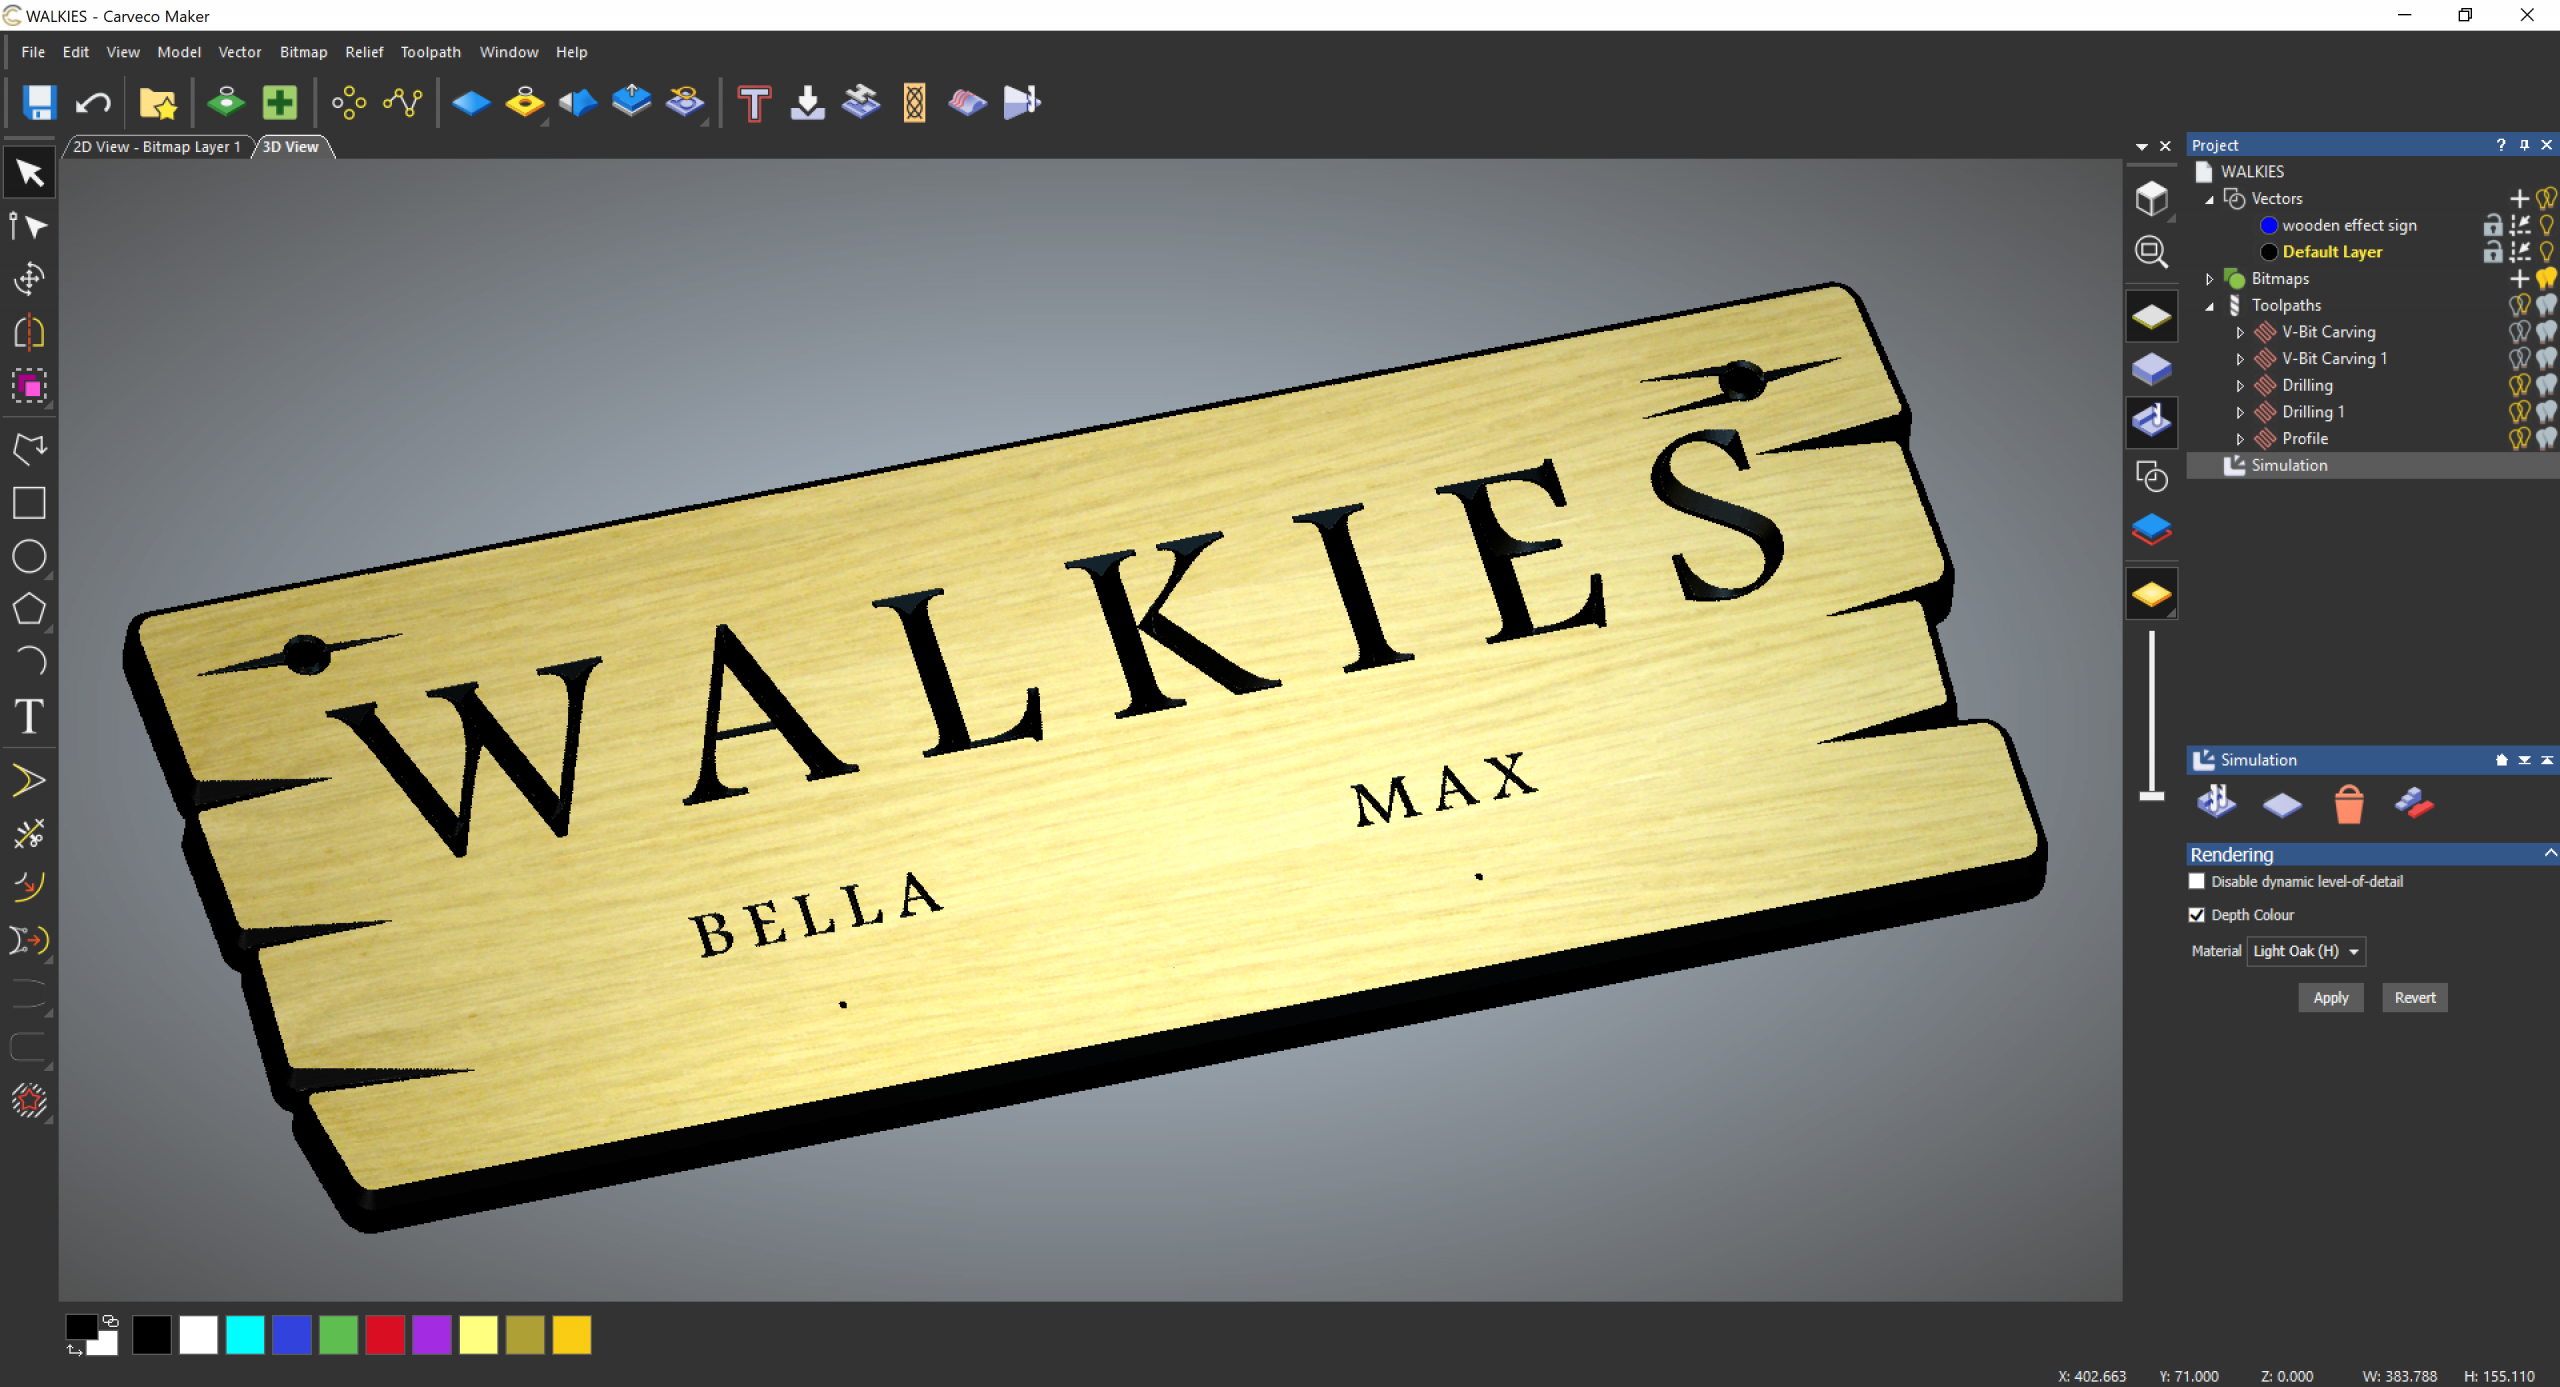 Carveco Maker Project: Walkies Sign